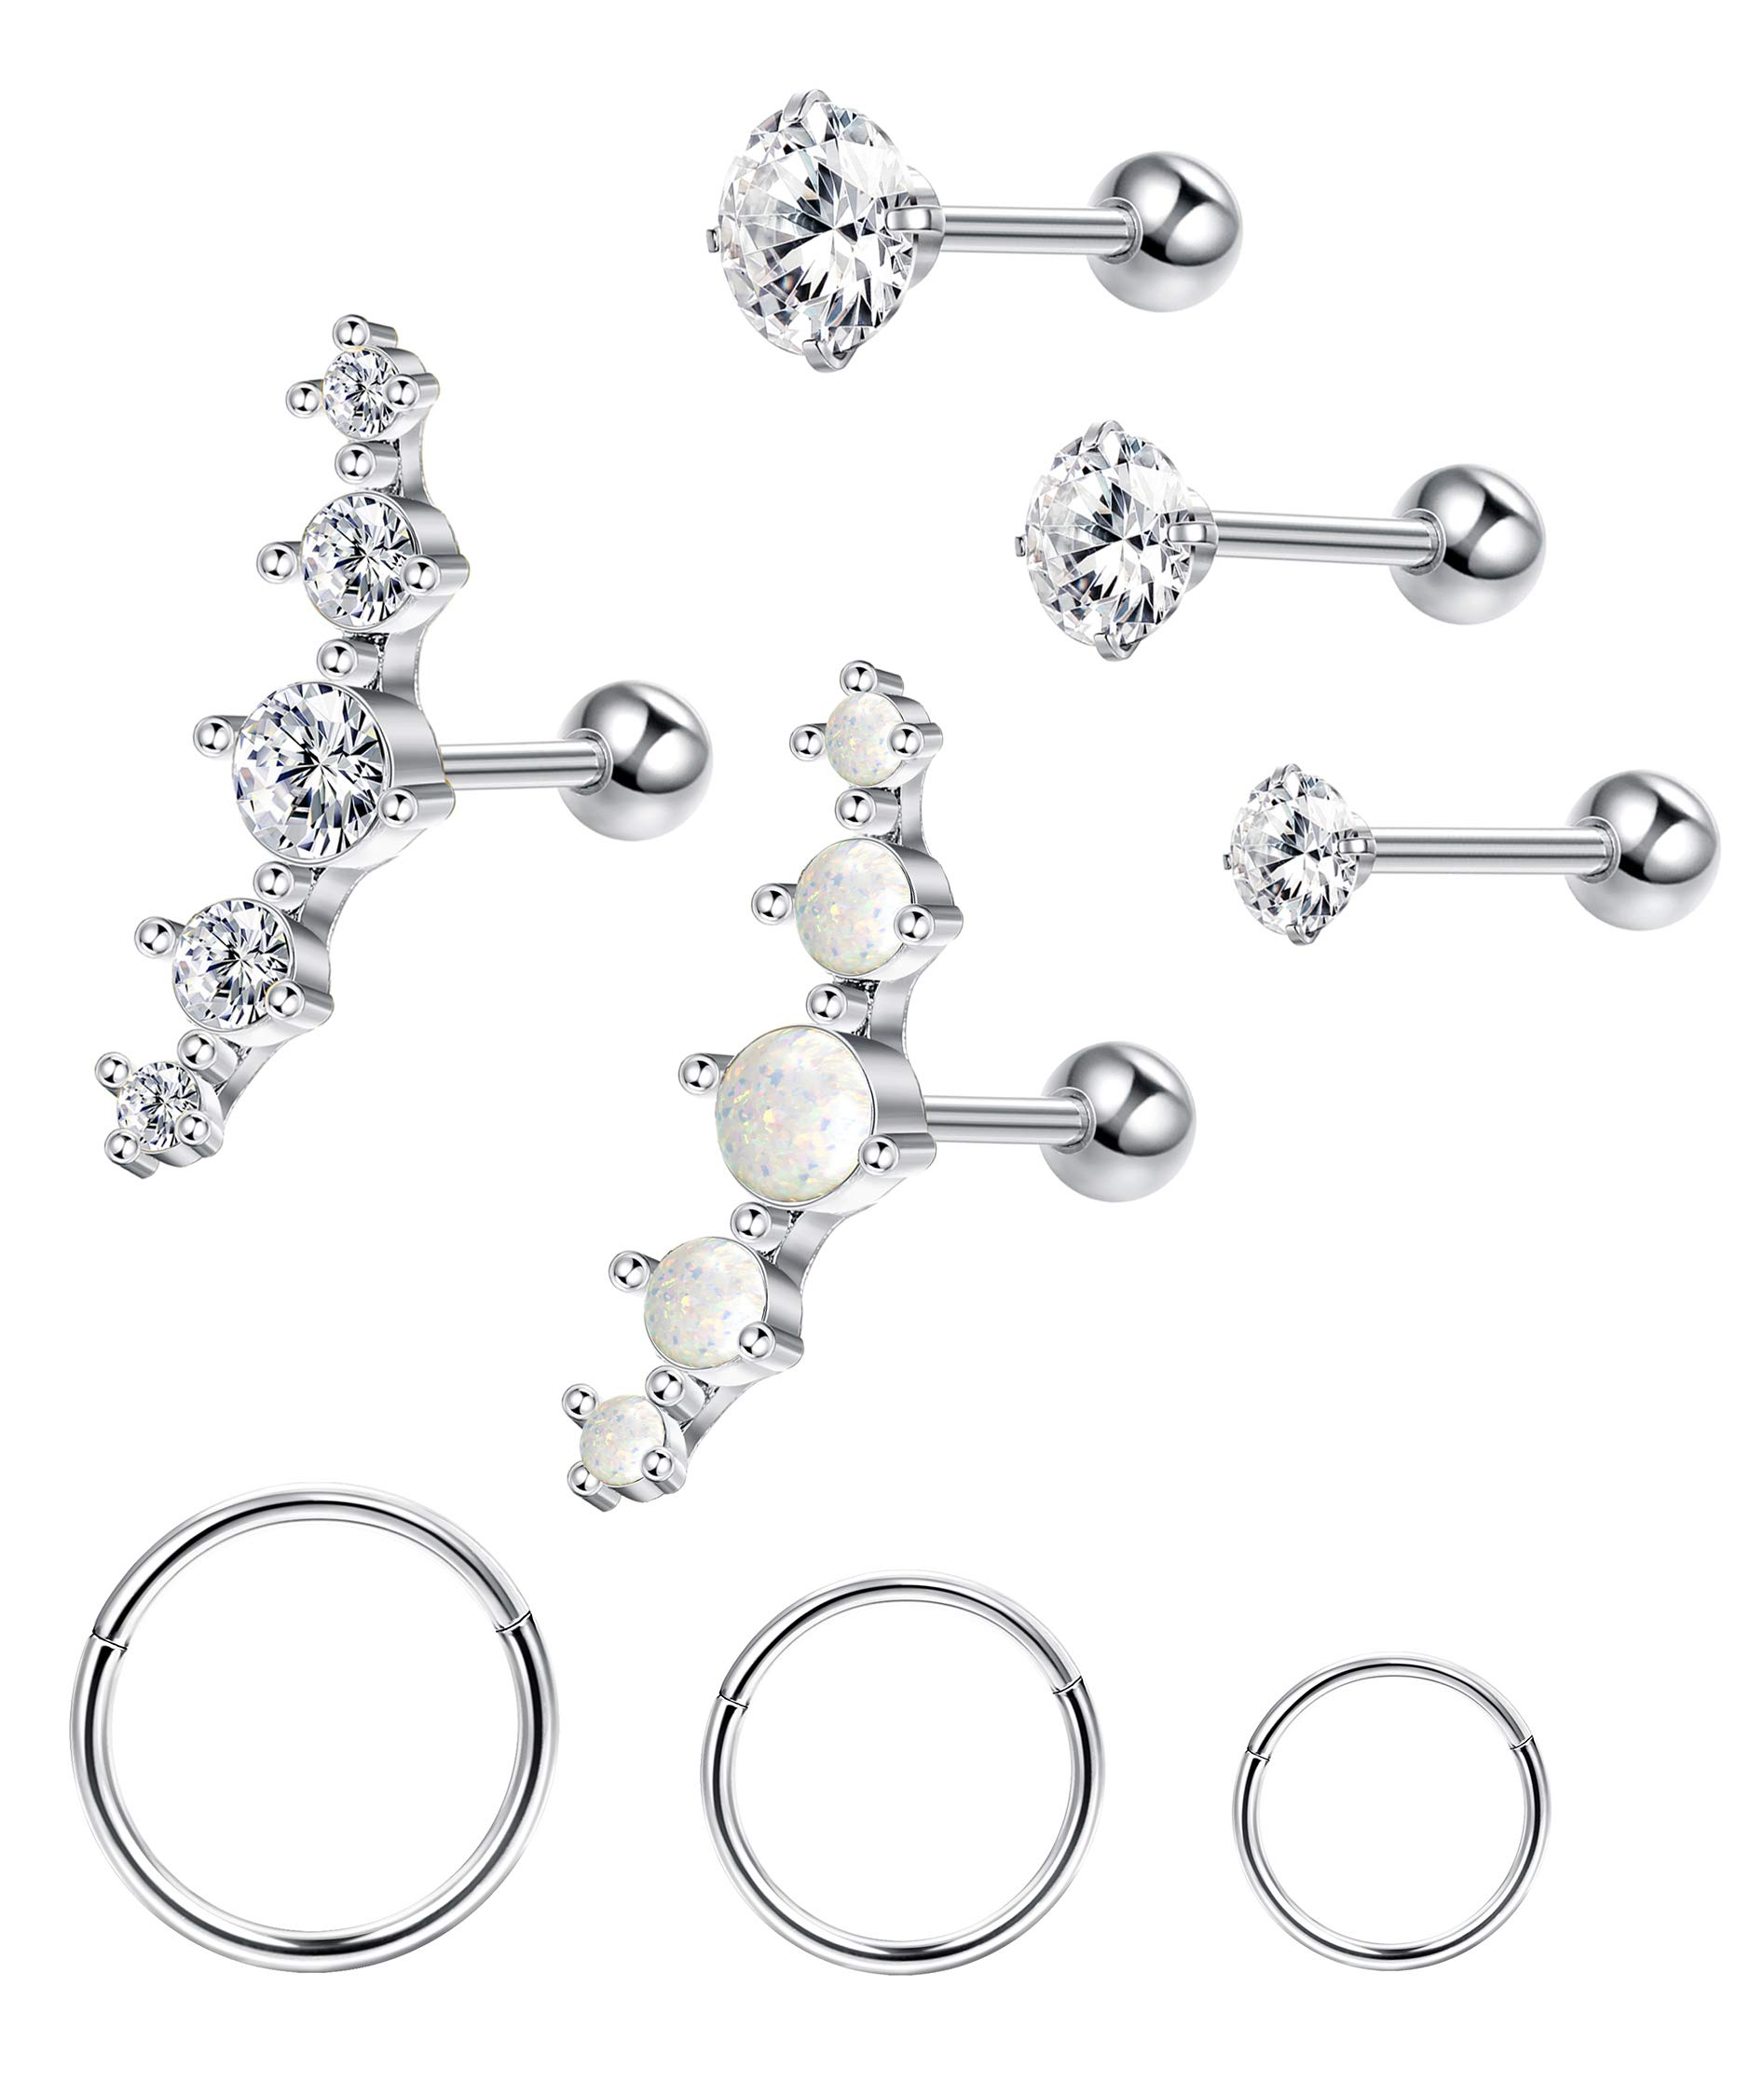 Adramata Stainless Steel Cartilage Earrings for Women Ball CZ Helix Conch Daith Piercing Stud Earrings Jewelry Set by Adramata